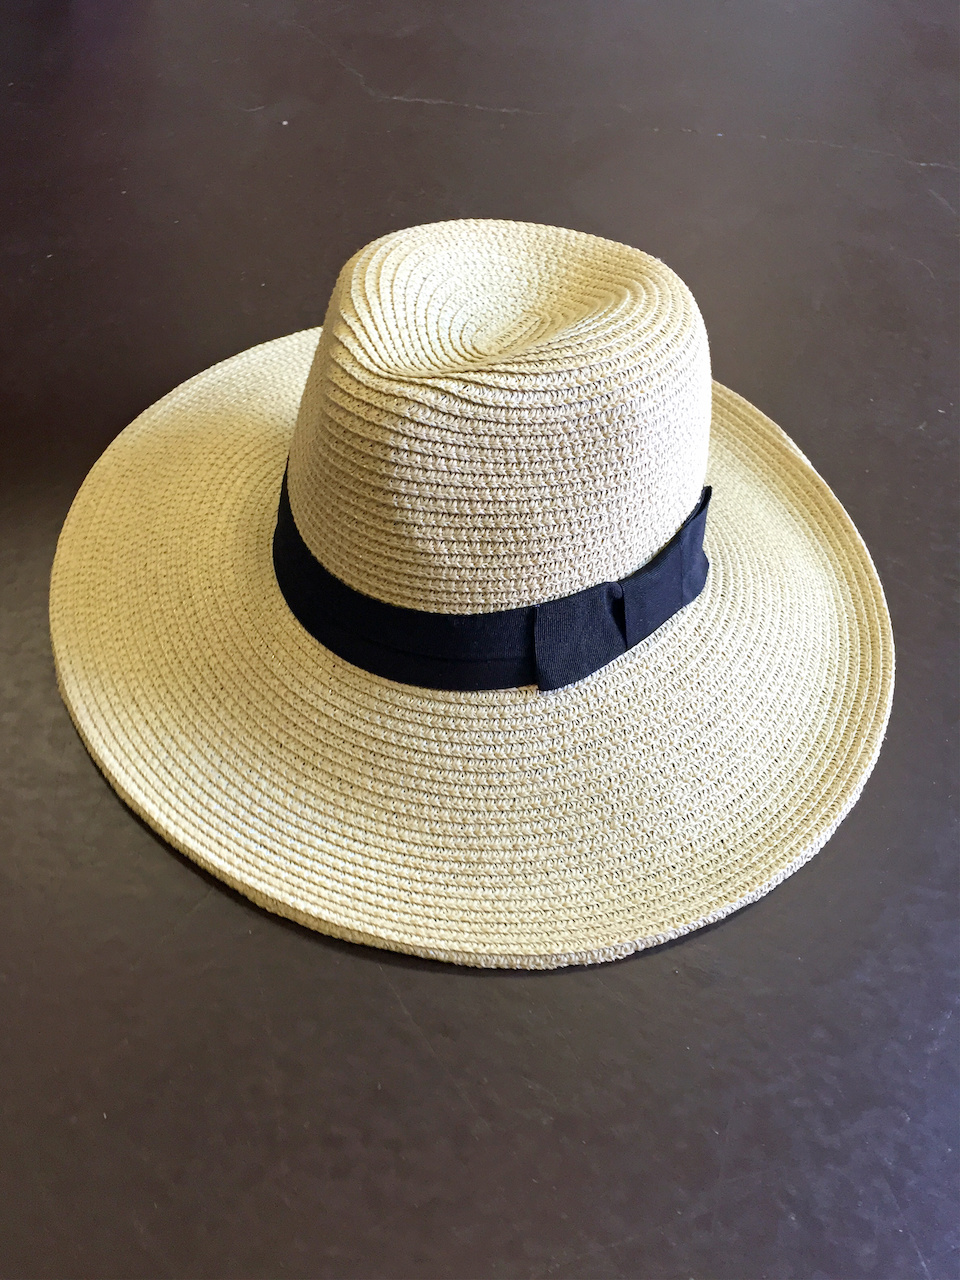 From Ambiance: Natural Panama hat, $29.99